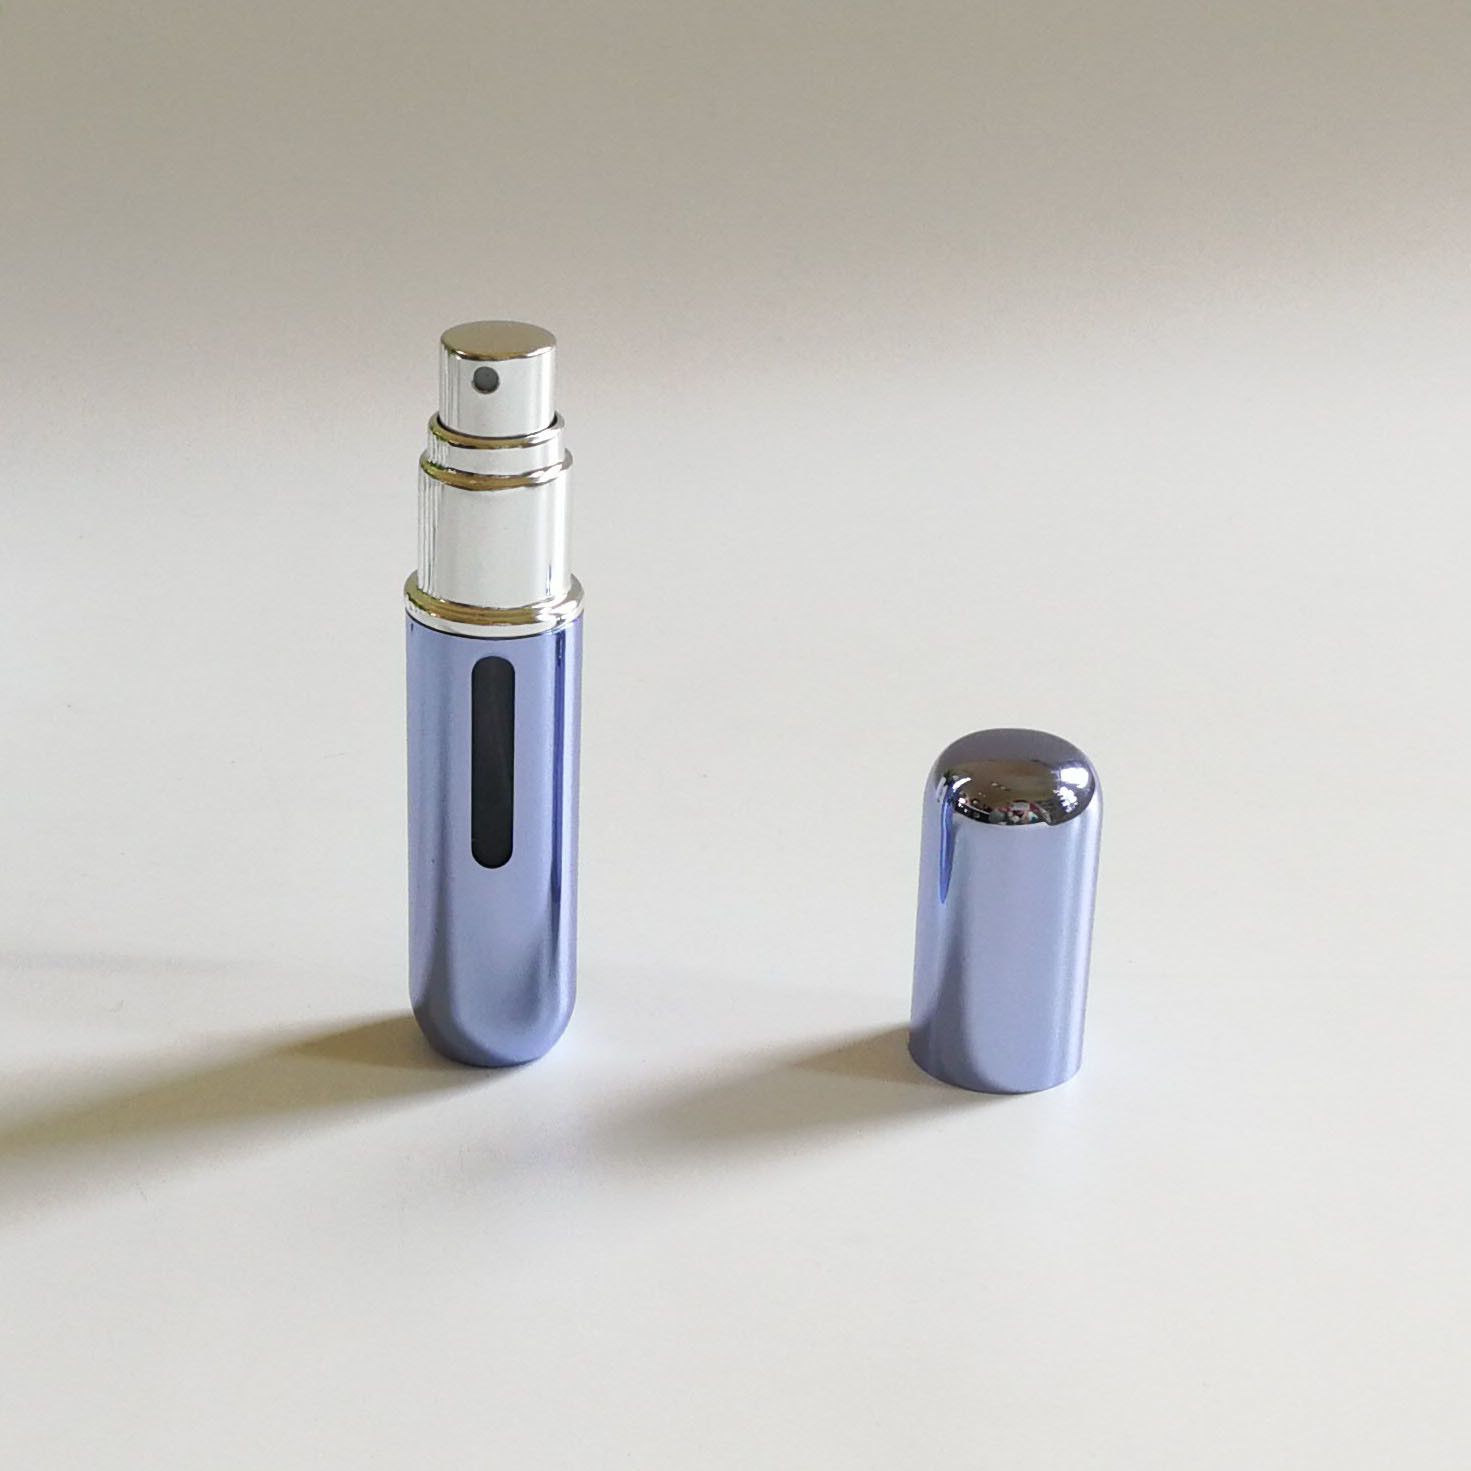 5ml Aluminum Perfume Spray Atomizer with Window on Casing (PPC-AT-1702)